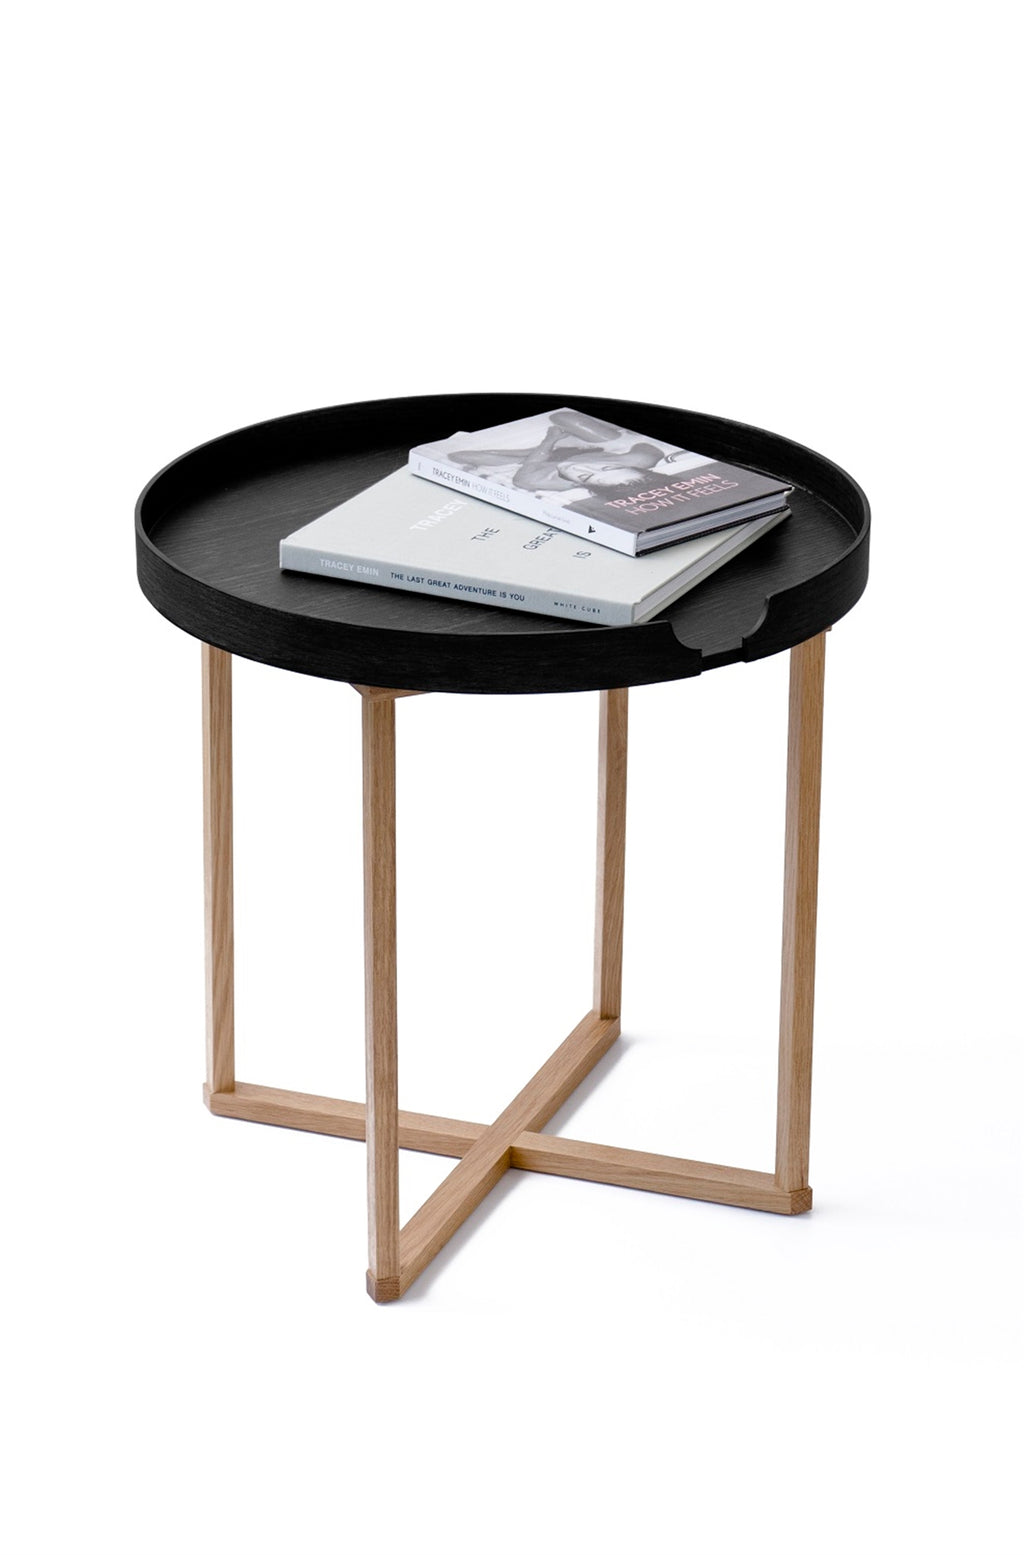 Black & Oak Side Table - AboutRuby.com